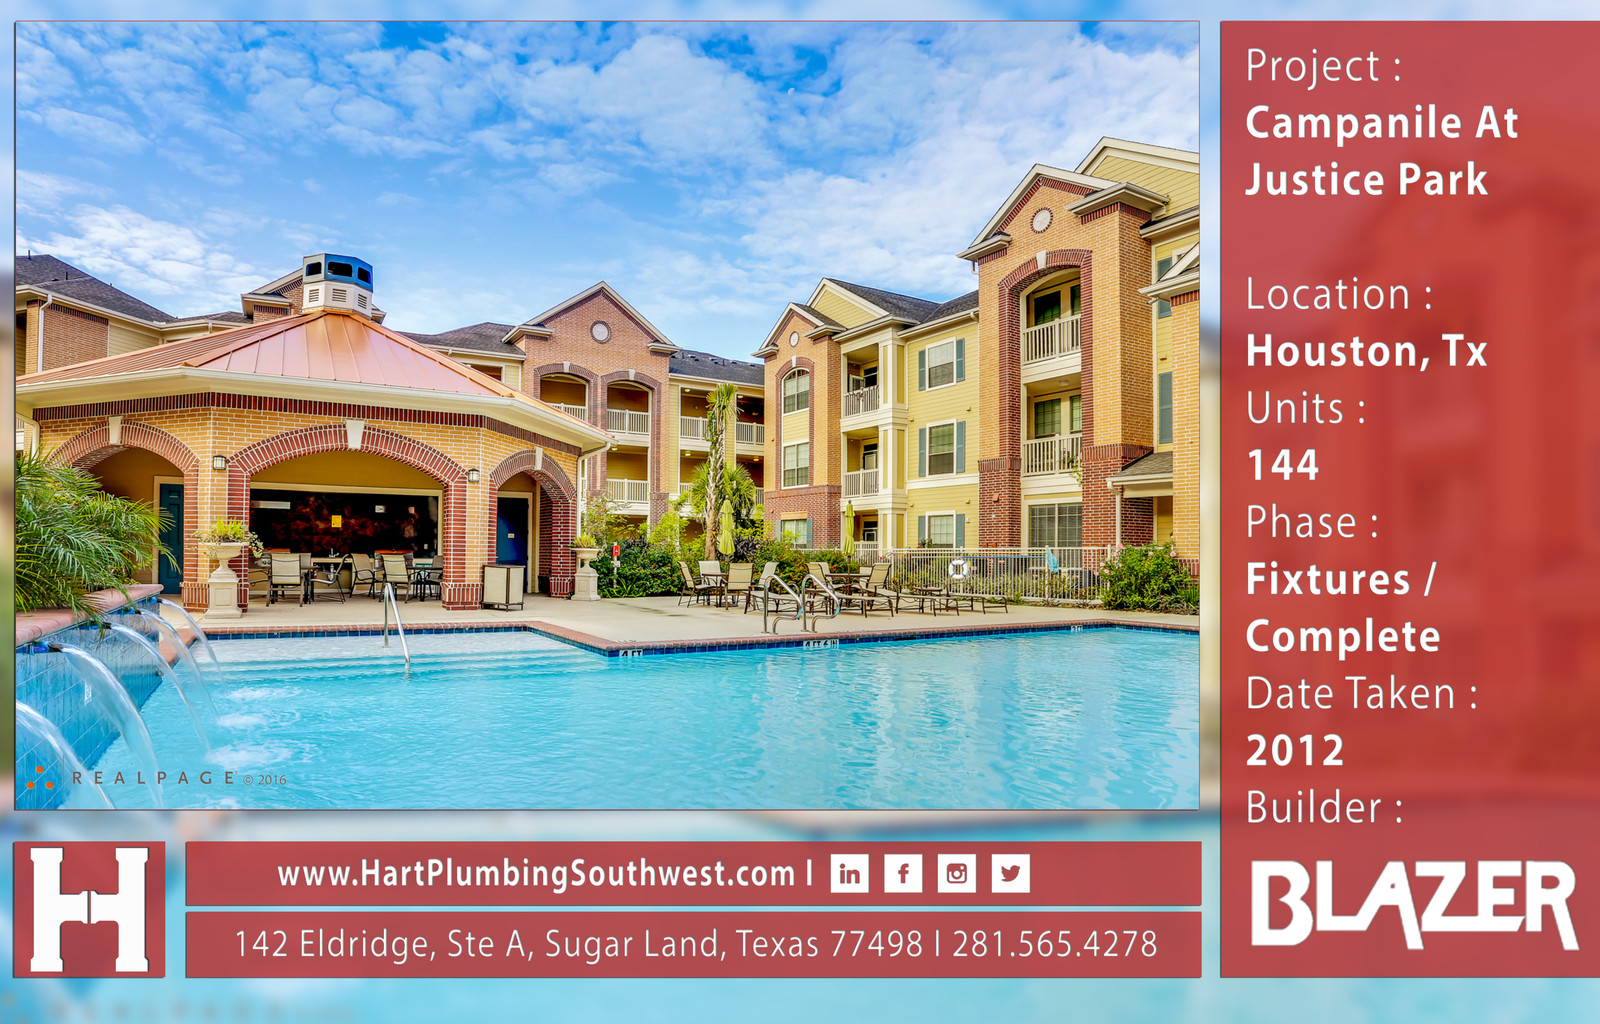 Houston Multifamily Plumbing Project Campanile At